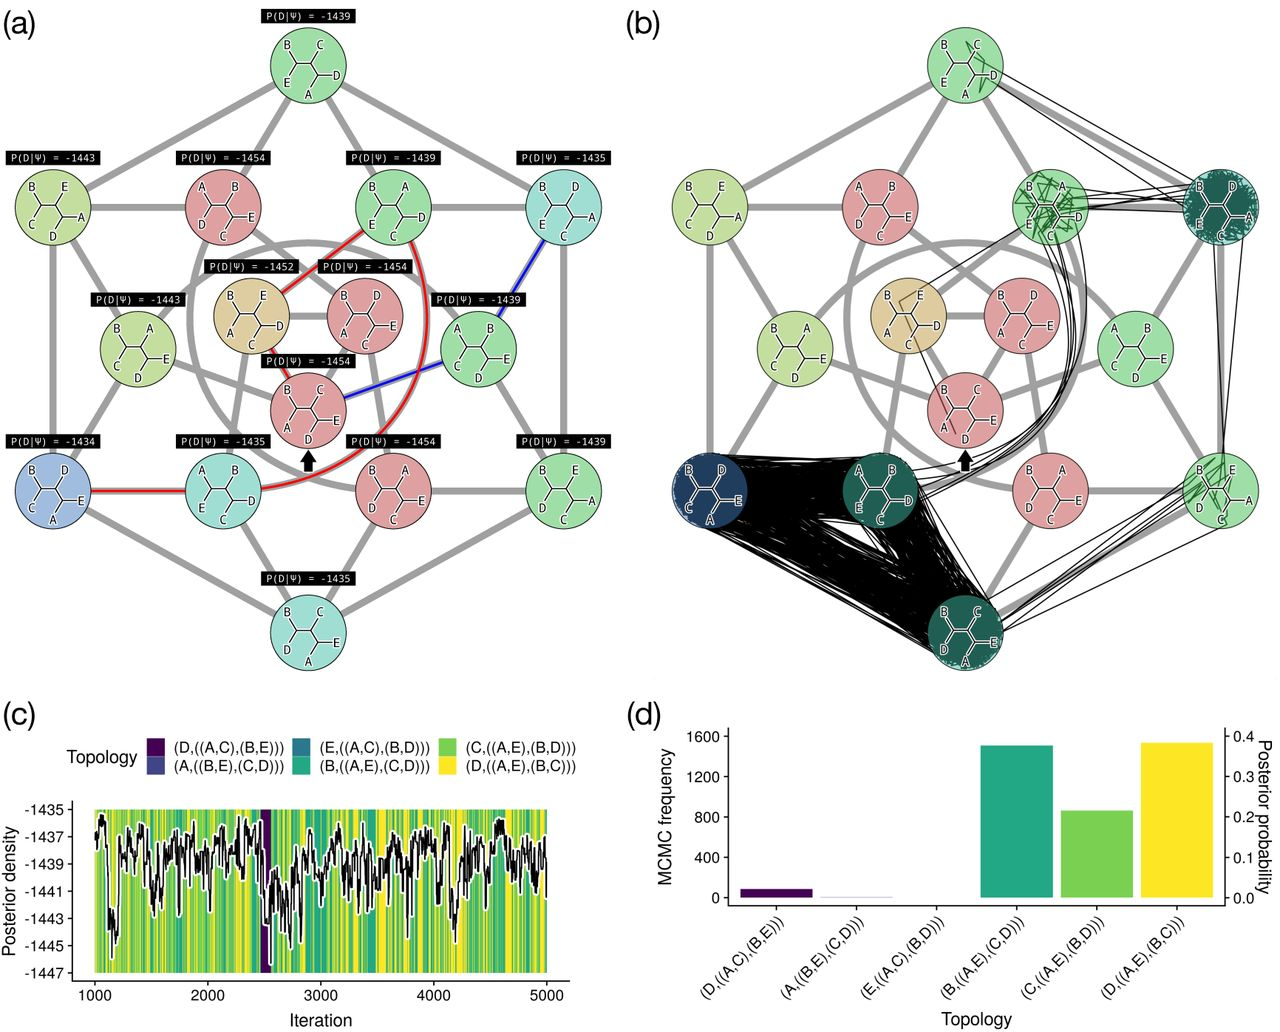 Practical Aspects of Phylogenetic Network Analysis Using